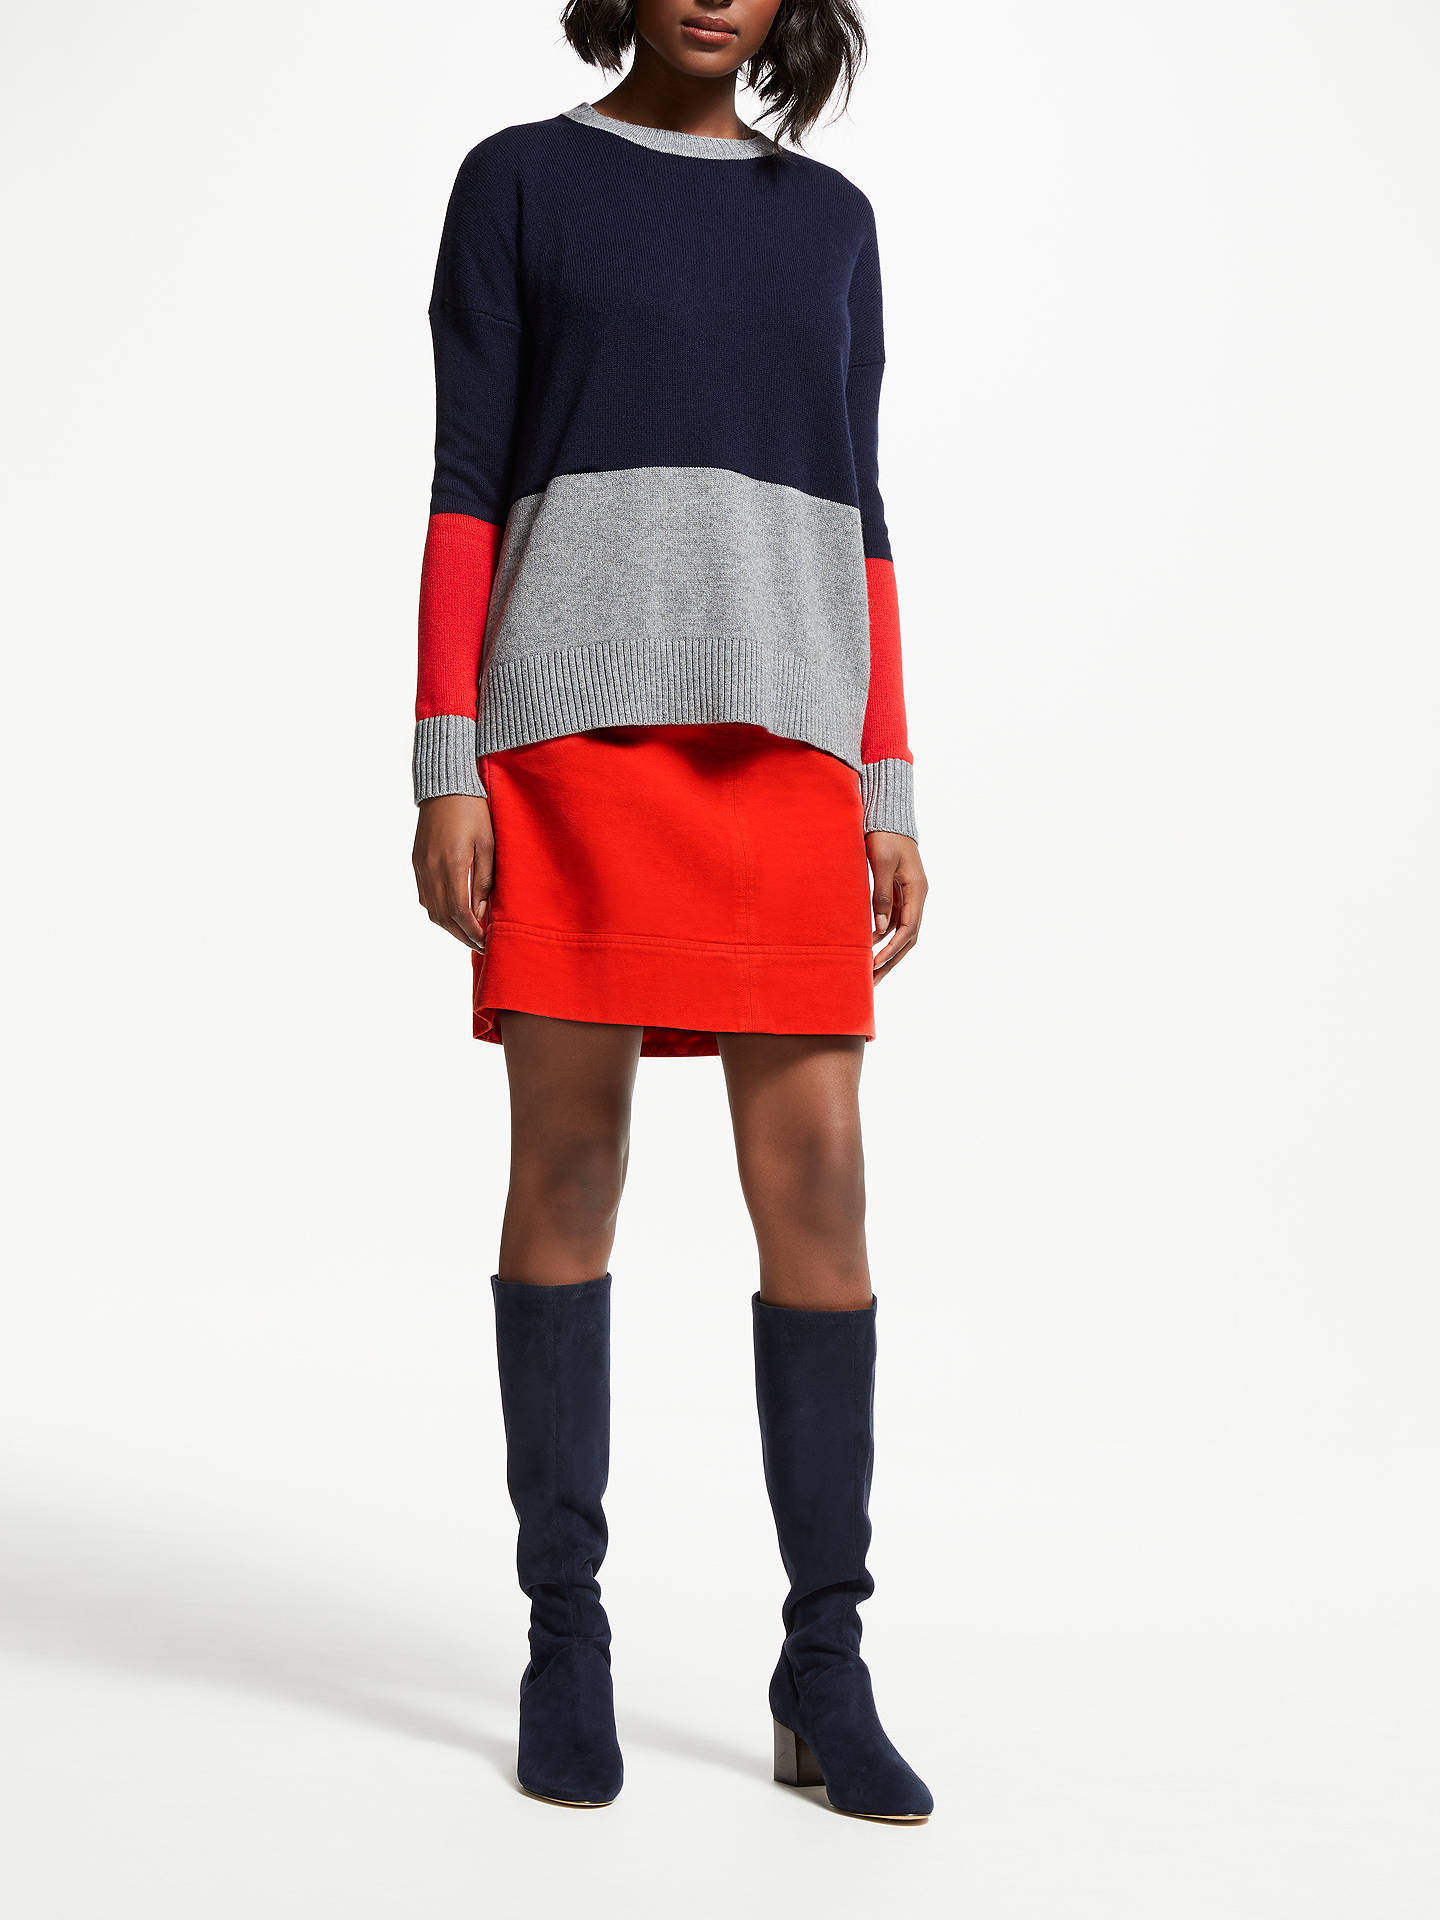 BuyBoden Lowick Jumper, Navy Colourblock, XL Online at johnlewis.com